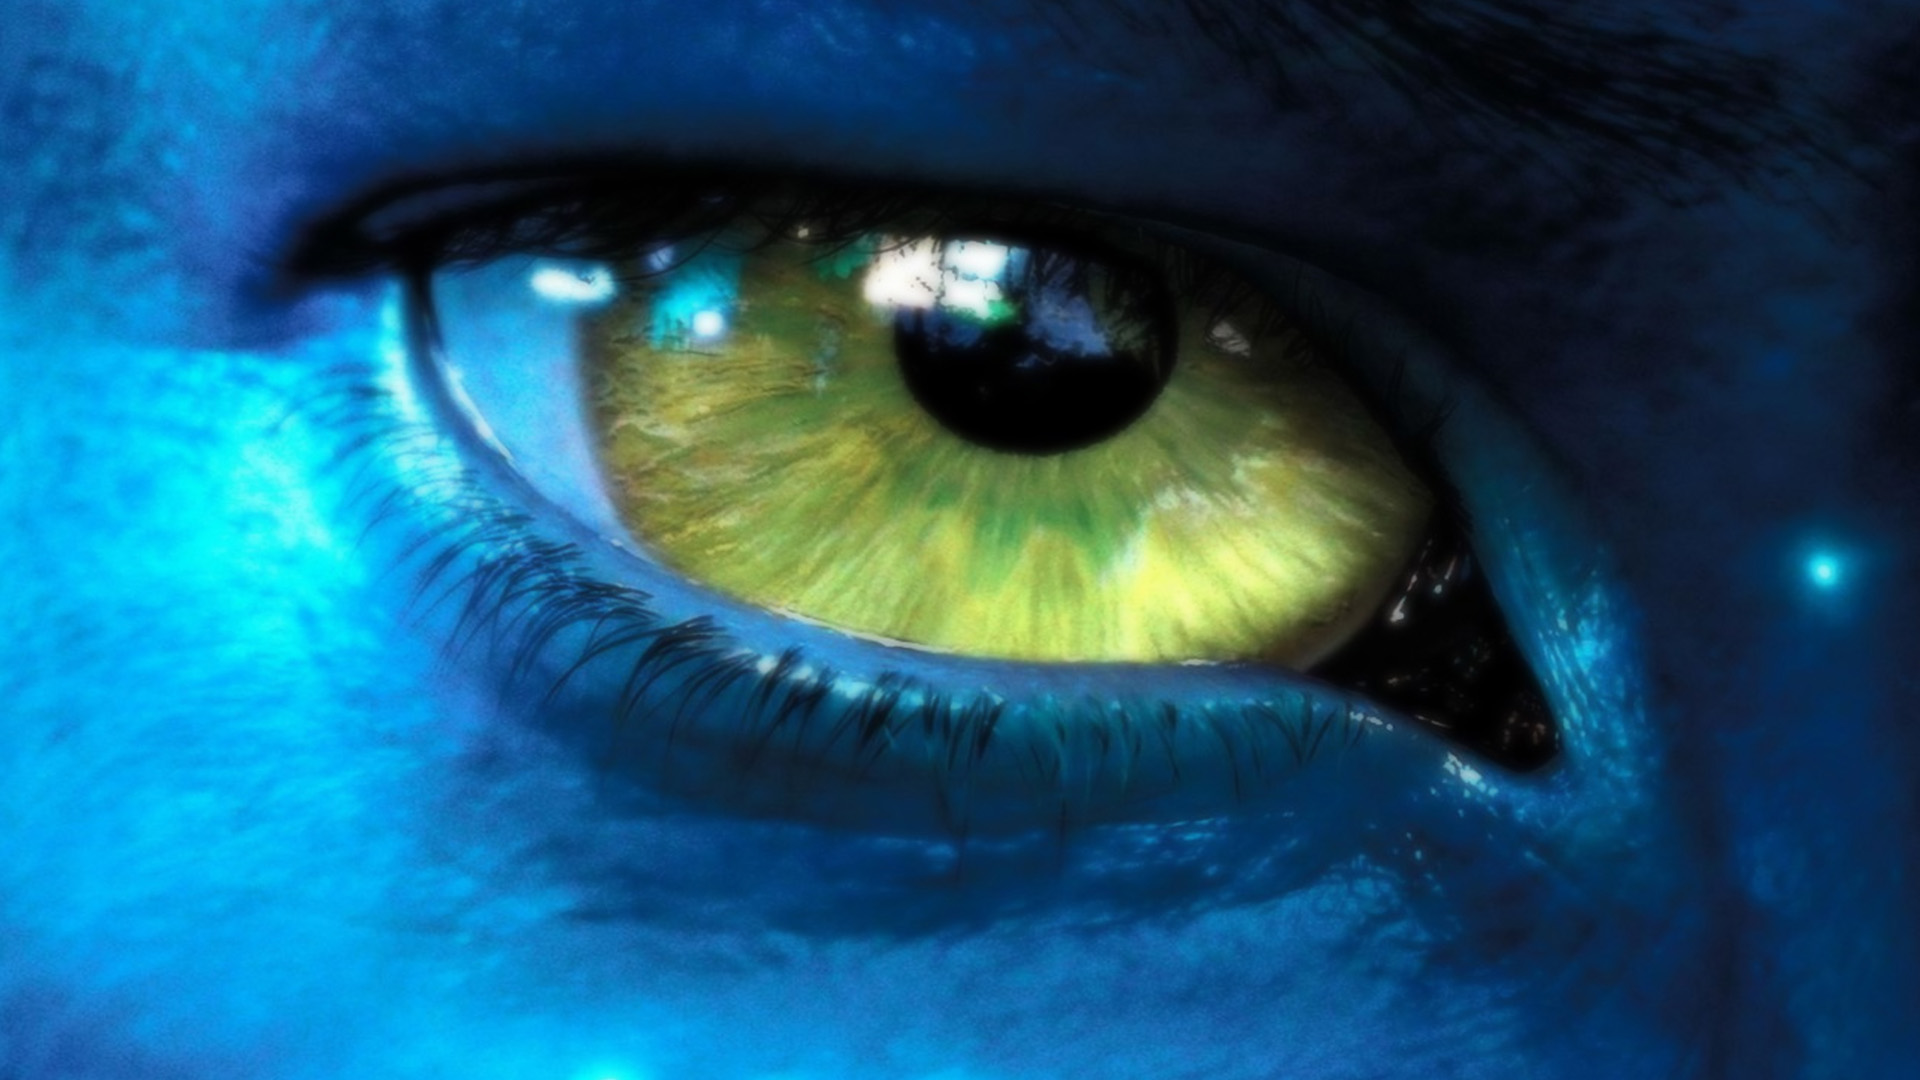 Avatar Movie Wallpapers Collection 6 (1920 x 1080 pixels